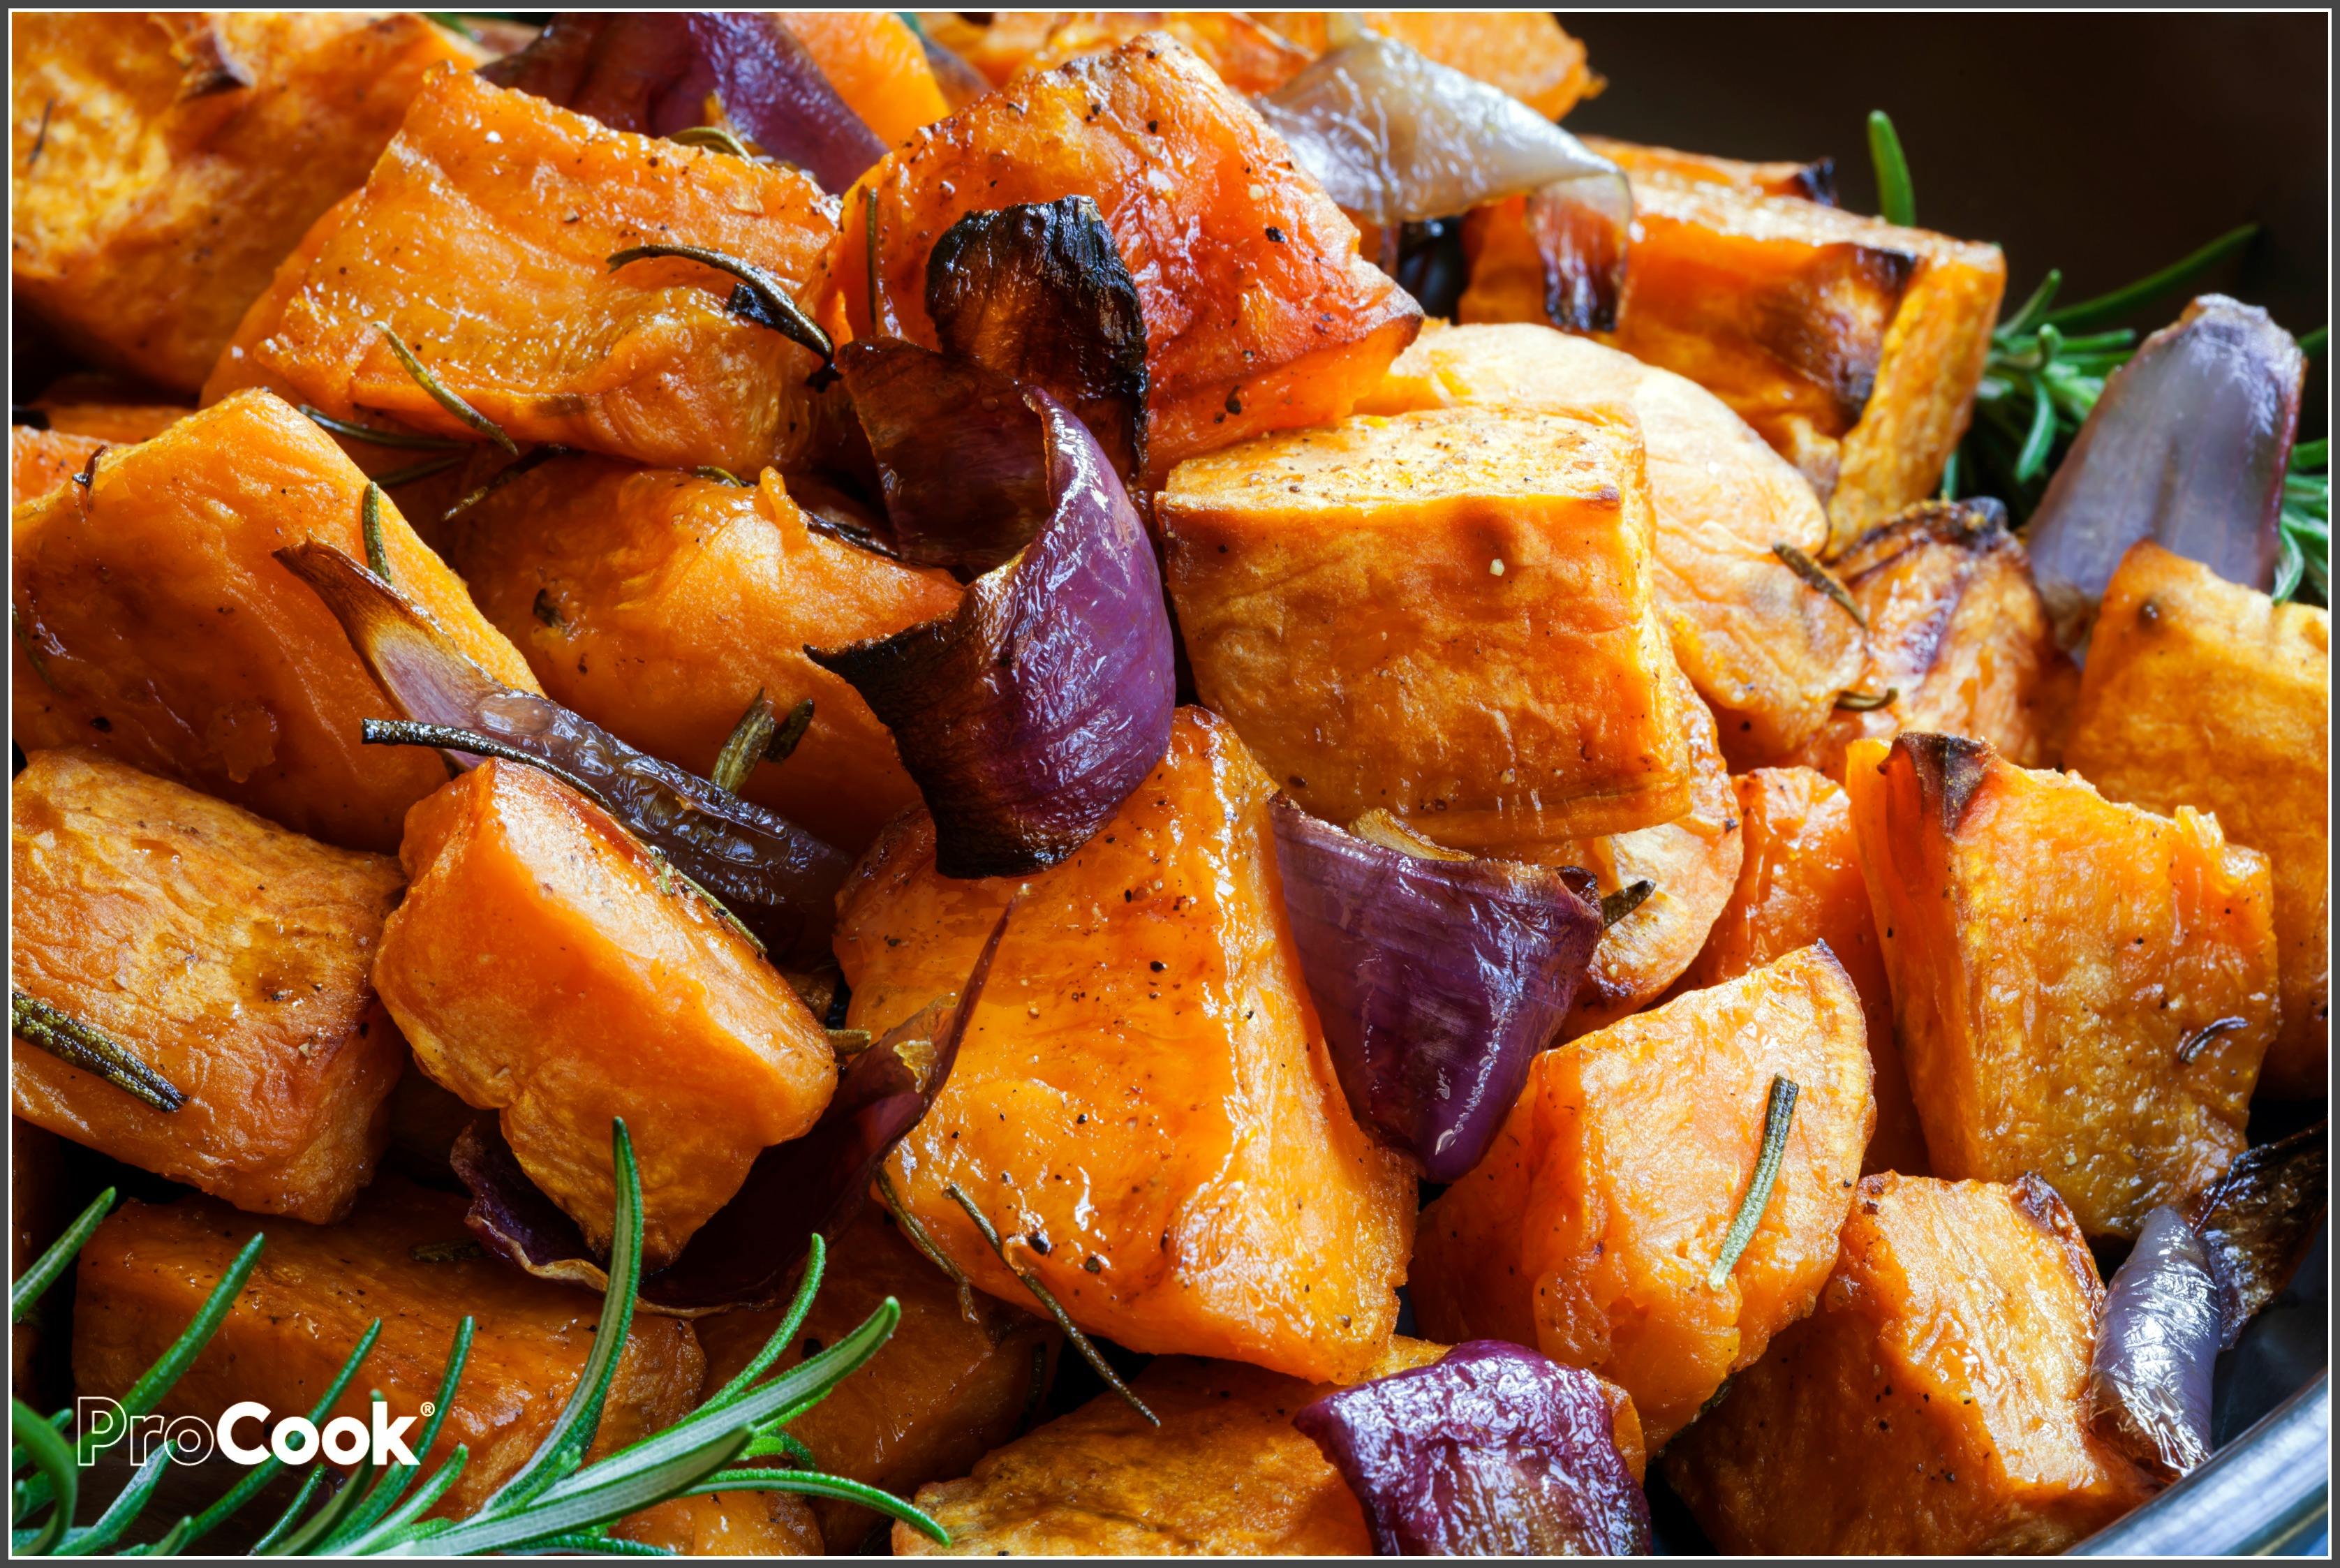 Sweet potatoes baked with red onions and rosemary.